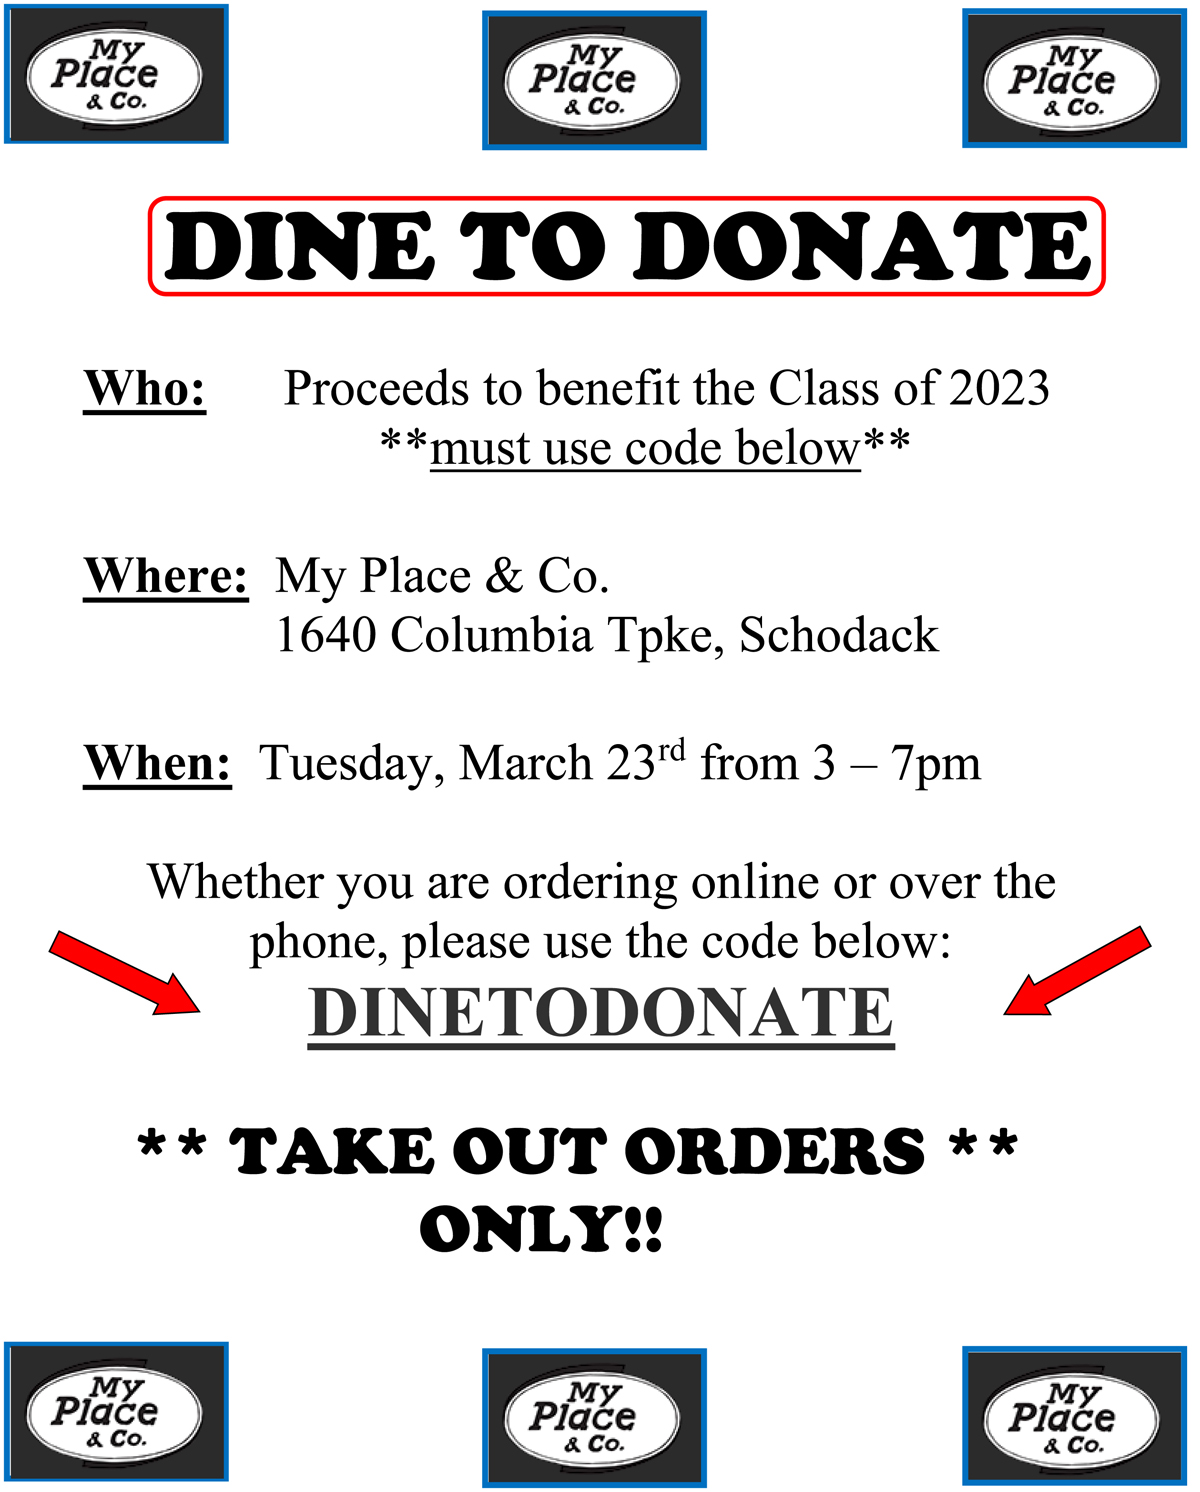 My Place - Dine to Donate flyer